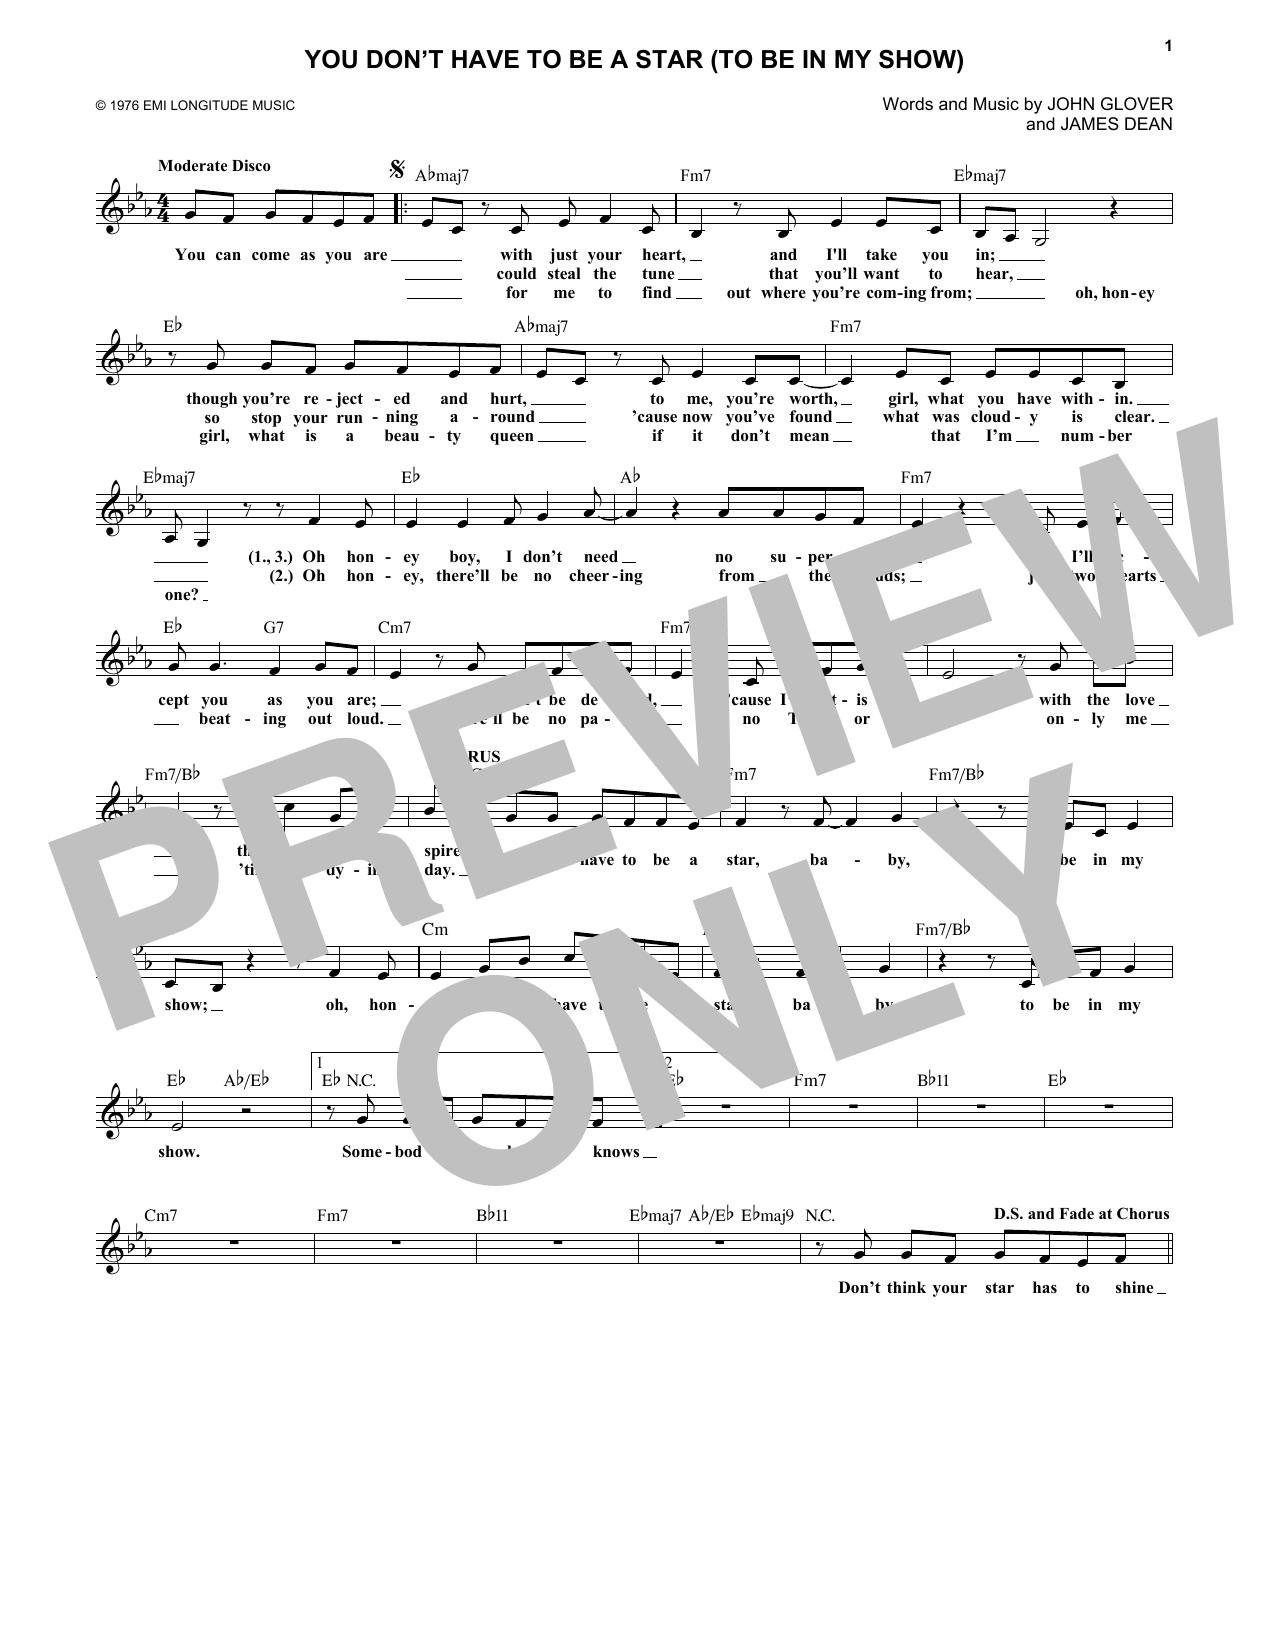 Marilyn McCoo and Billy Davis, Jr. You Don't Have To Be A Star (To Be In My Show) sheet music notes and chords. Download Printable PDF.